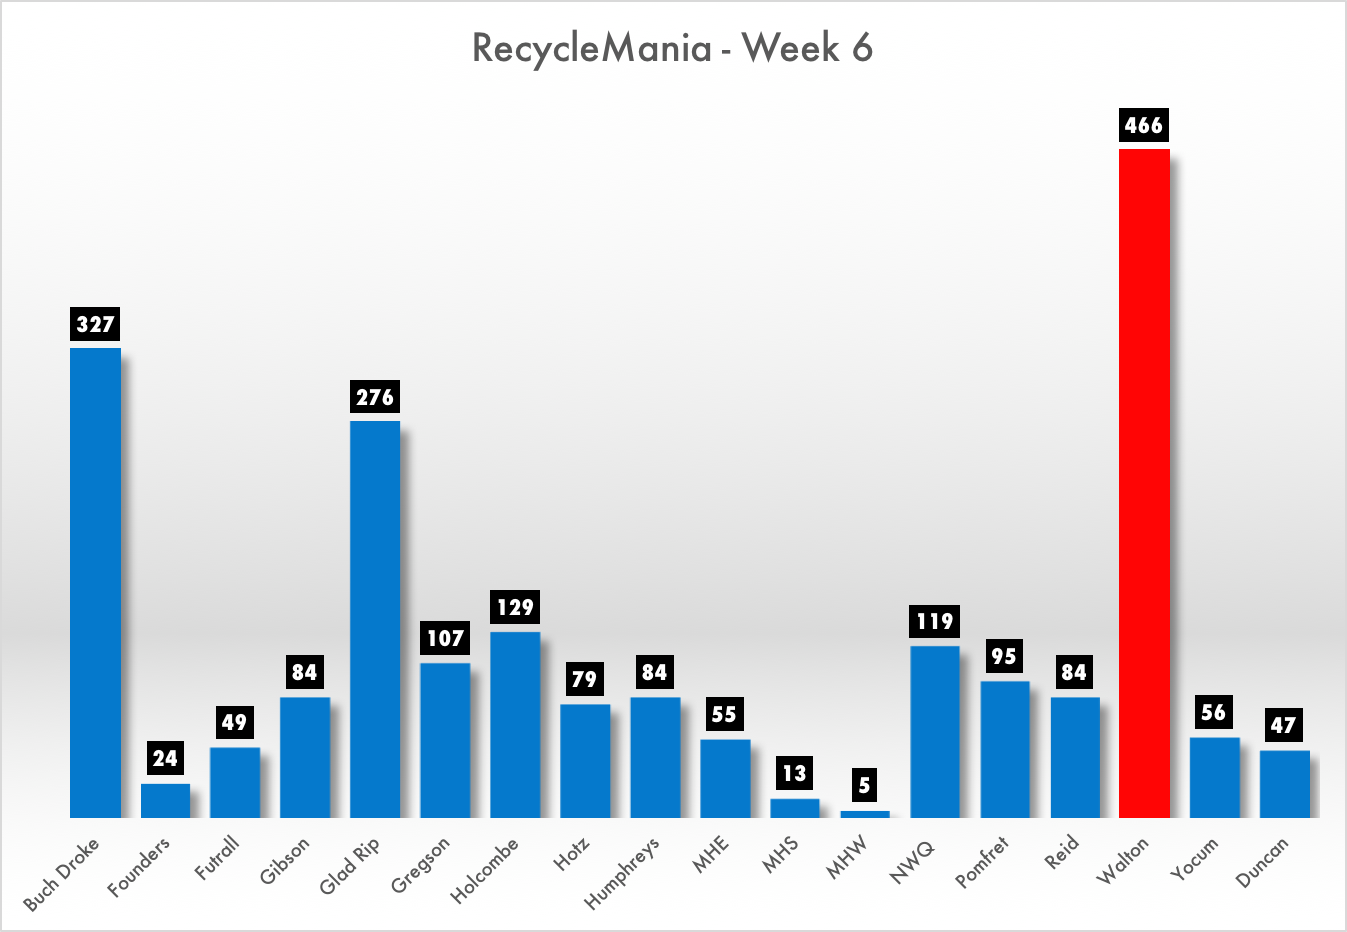 Walton Holds the Lead   RecycleMania Week 6